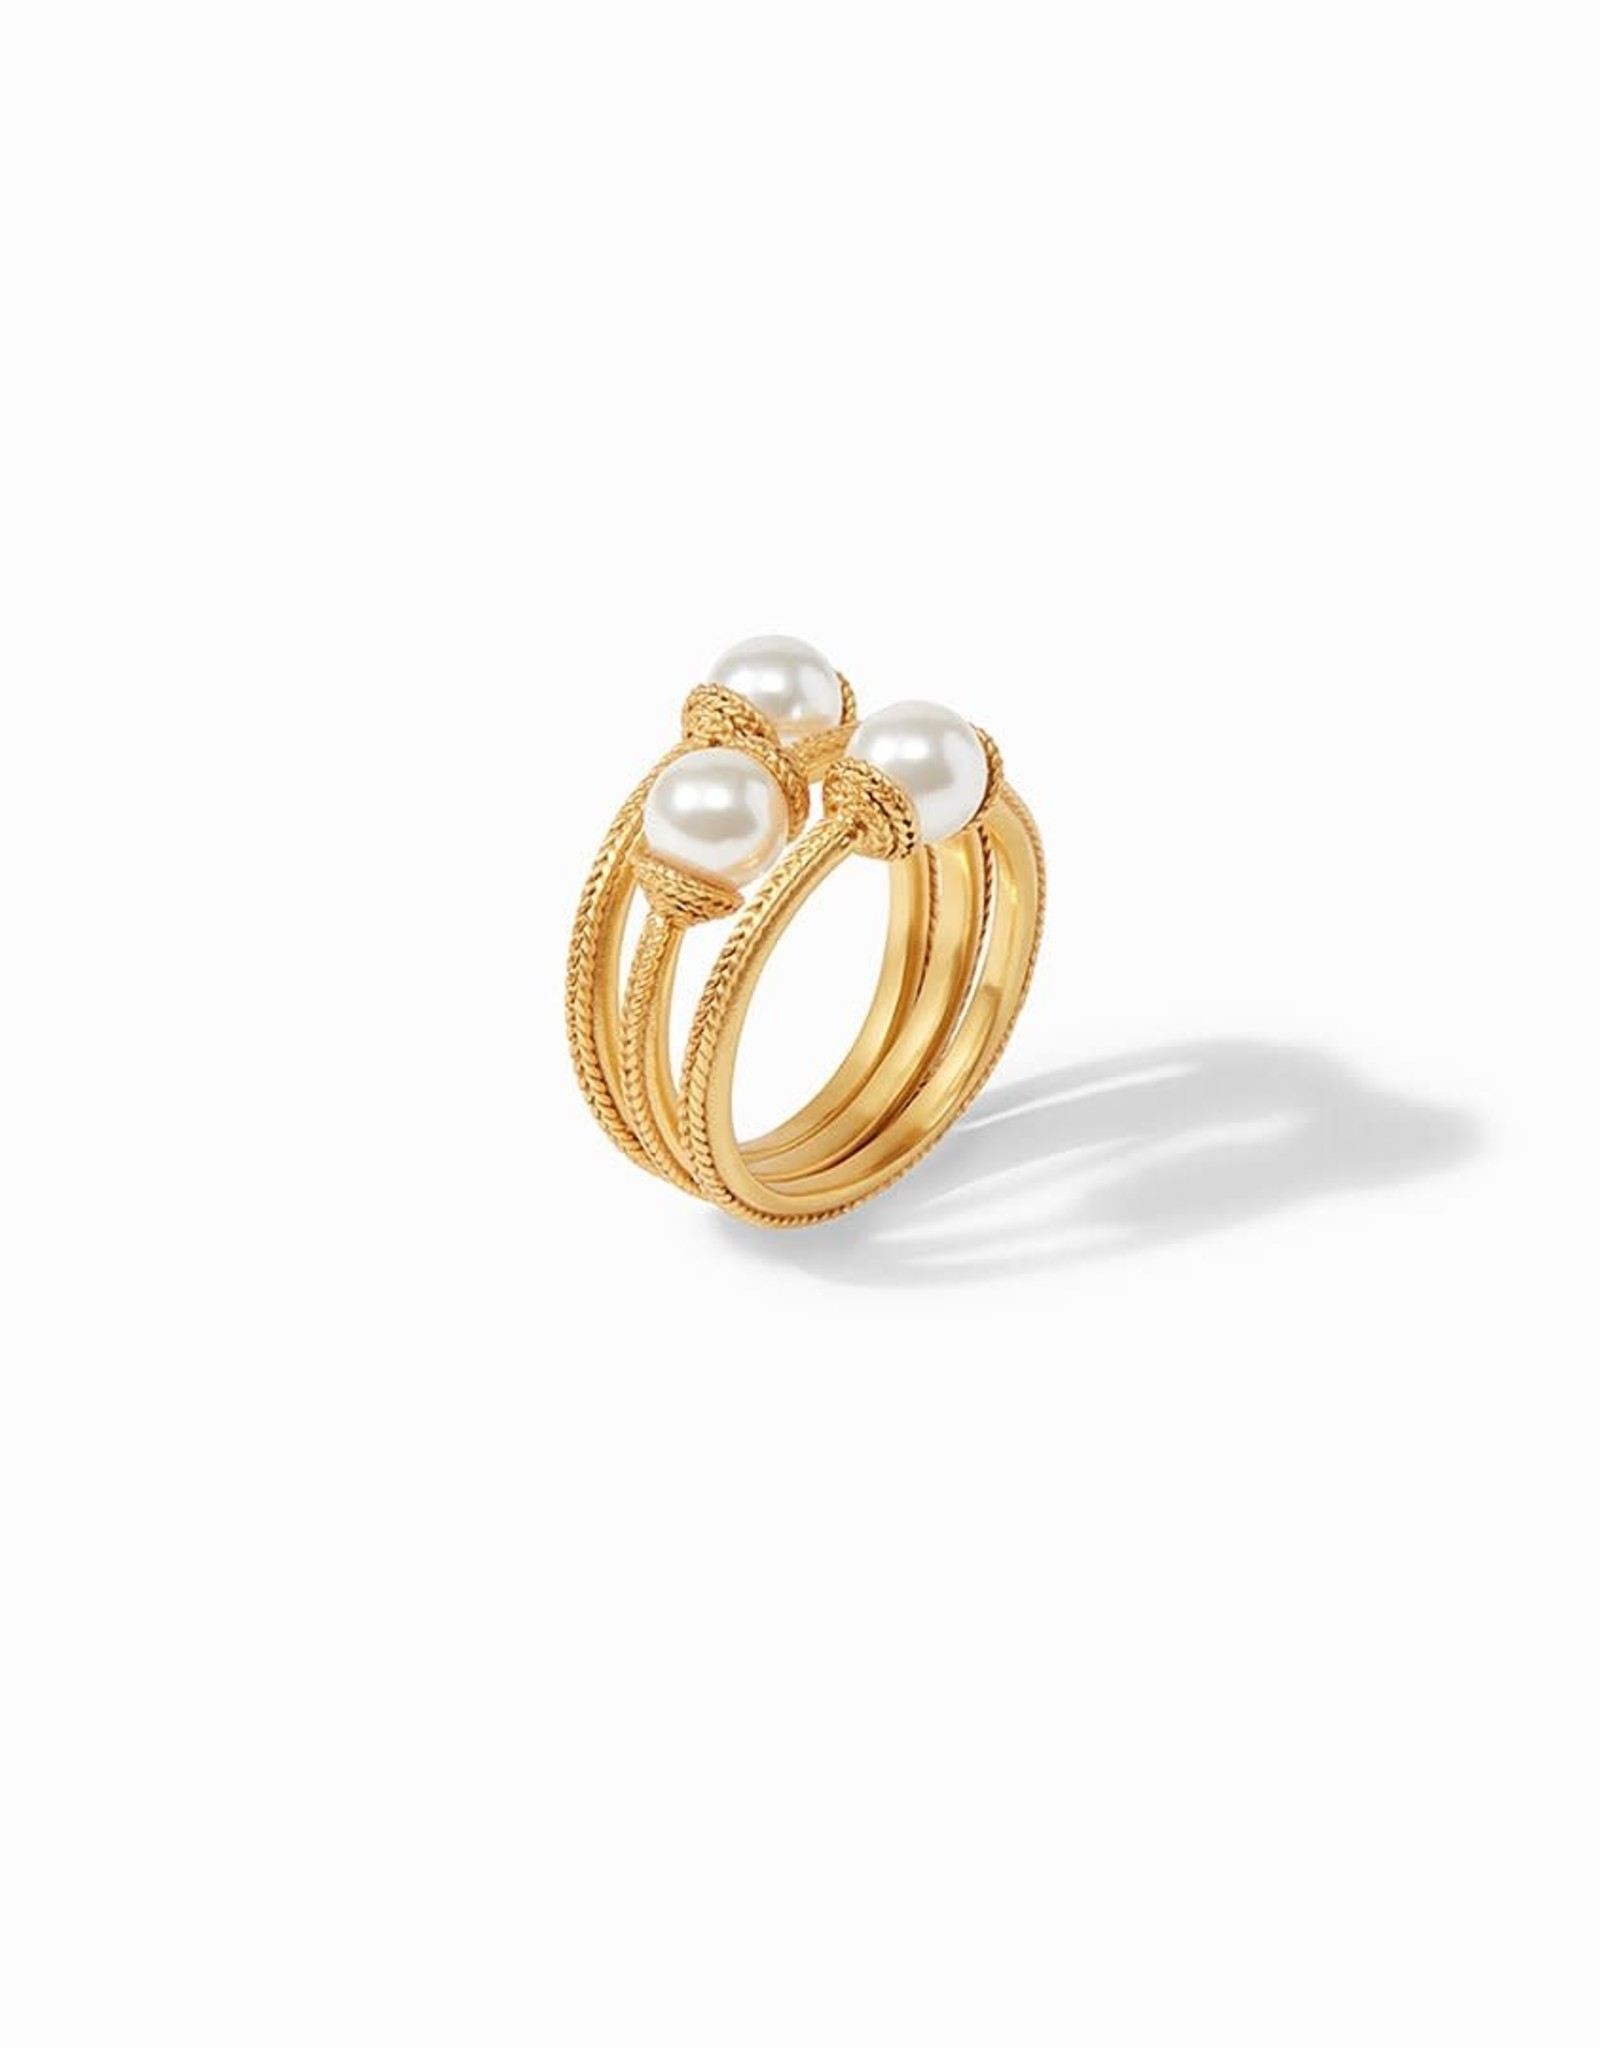 Julie Vos Calypso Pearl Stacking Ring (Set of 3) Gold - Size 6